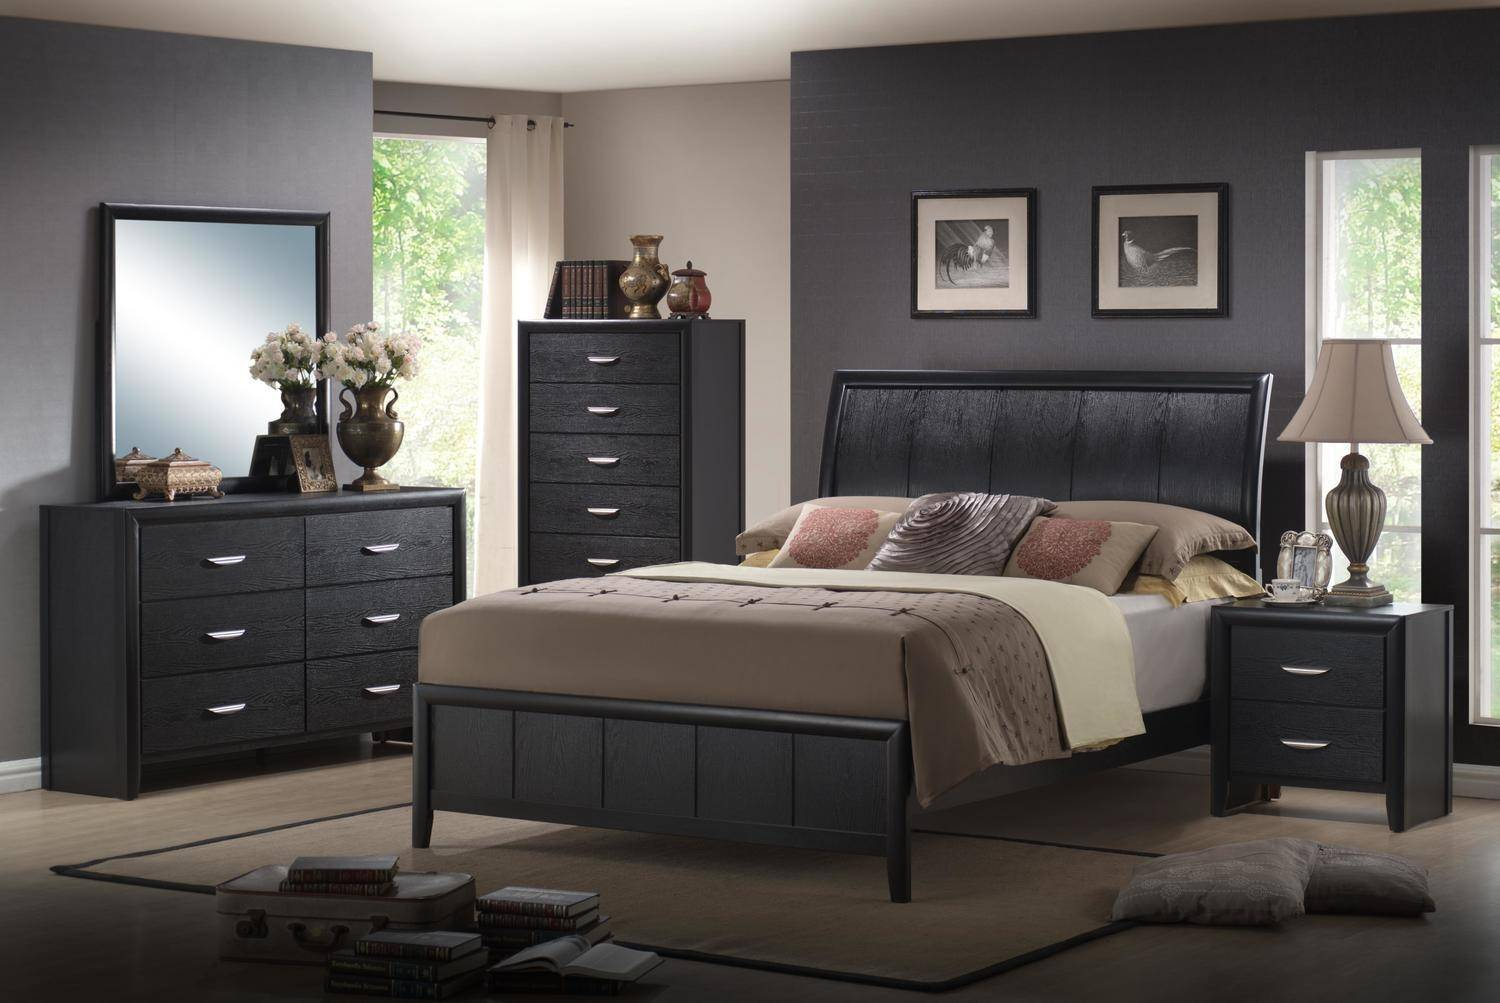 MYCO Furniture MN4840-Q Monet Black Queen Sleigh Bed Set 3Pcs w/2  Nightstands